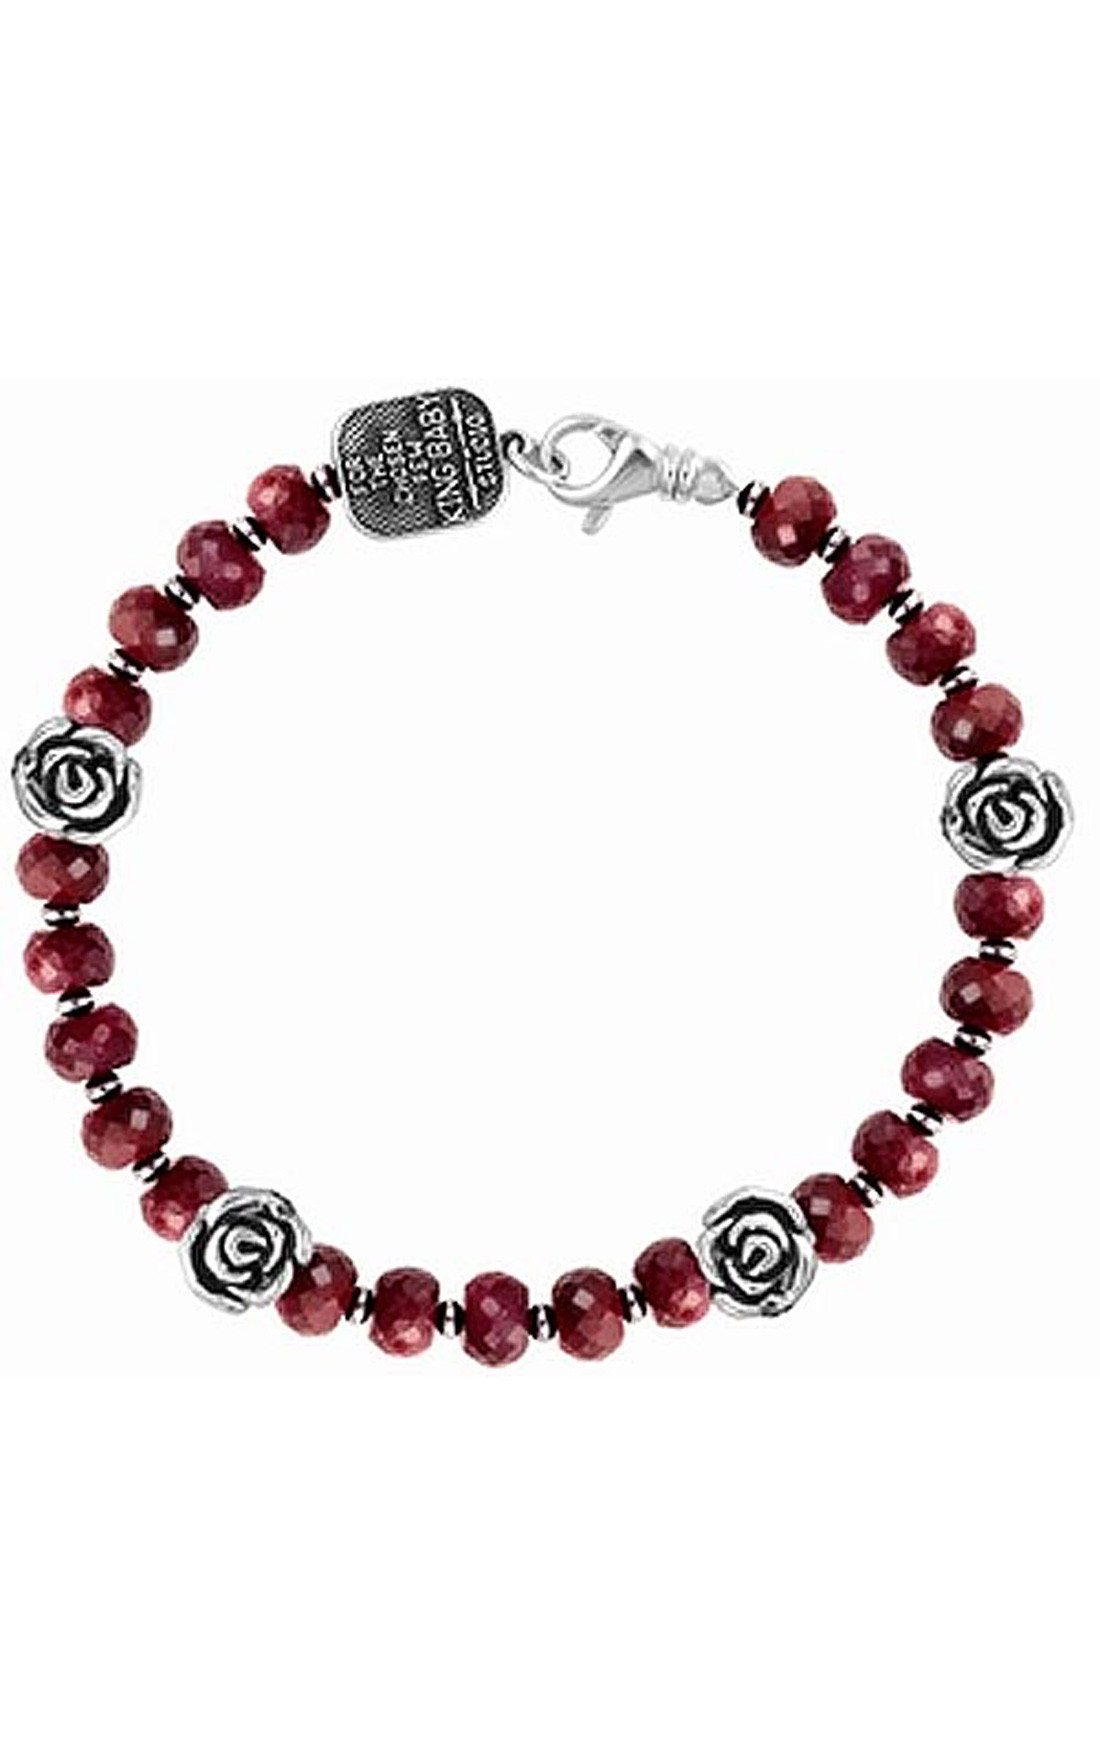 King Baby - Ruby Bracelet With 4 Silver Roses (K42-5706)